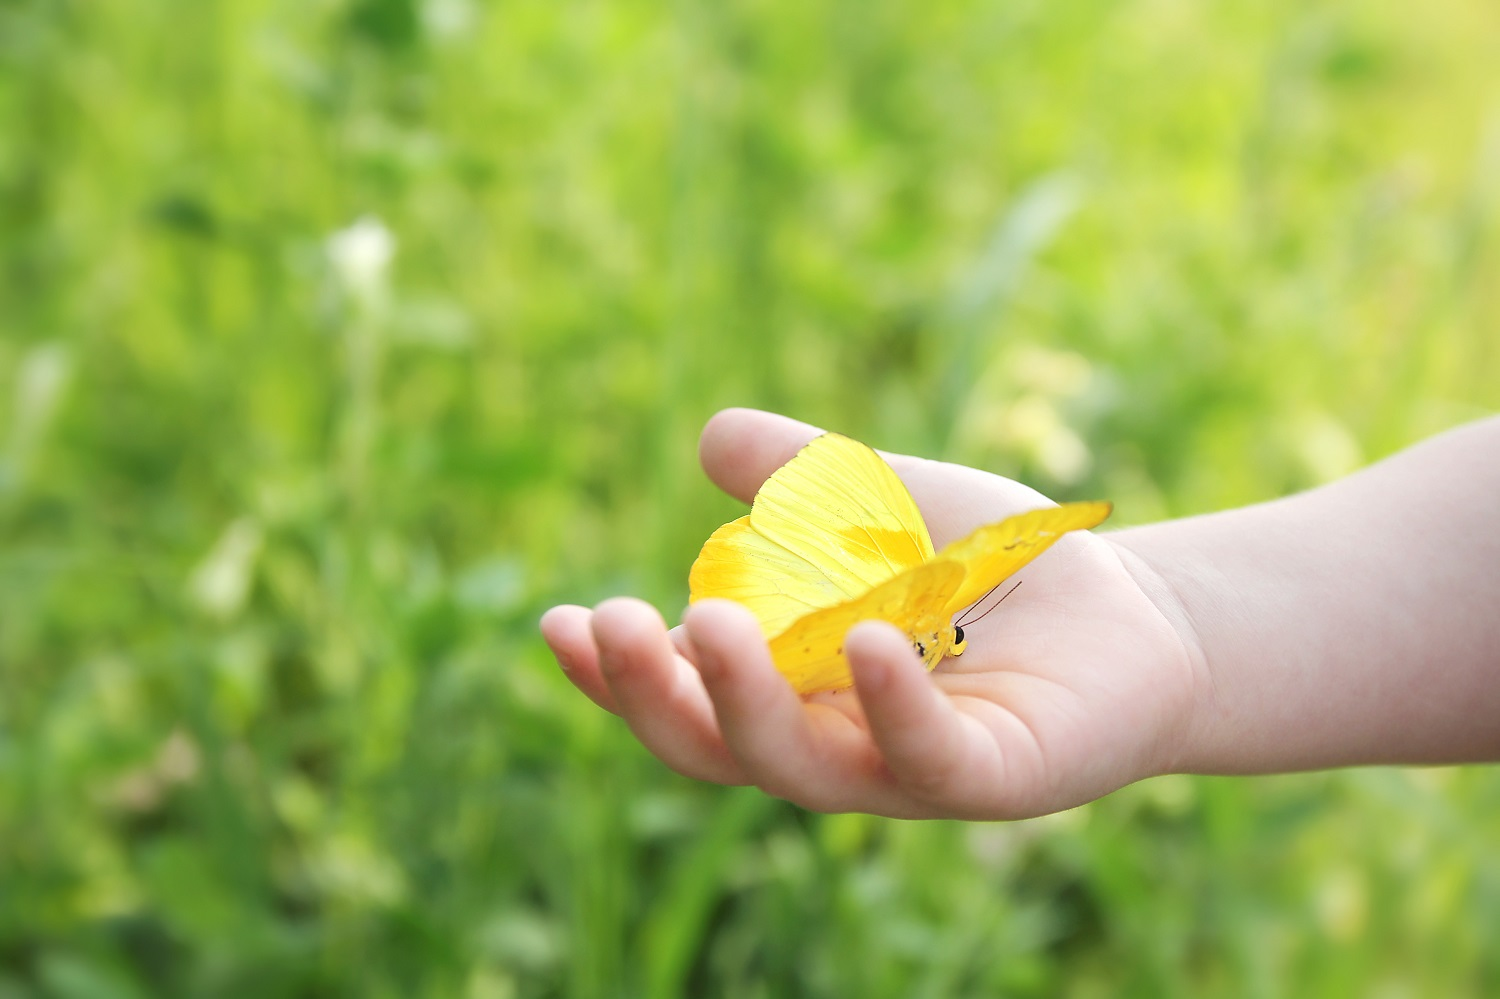 Child's Hand Holding Orange Barred Sulphur Butterfly Outside